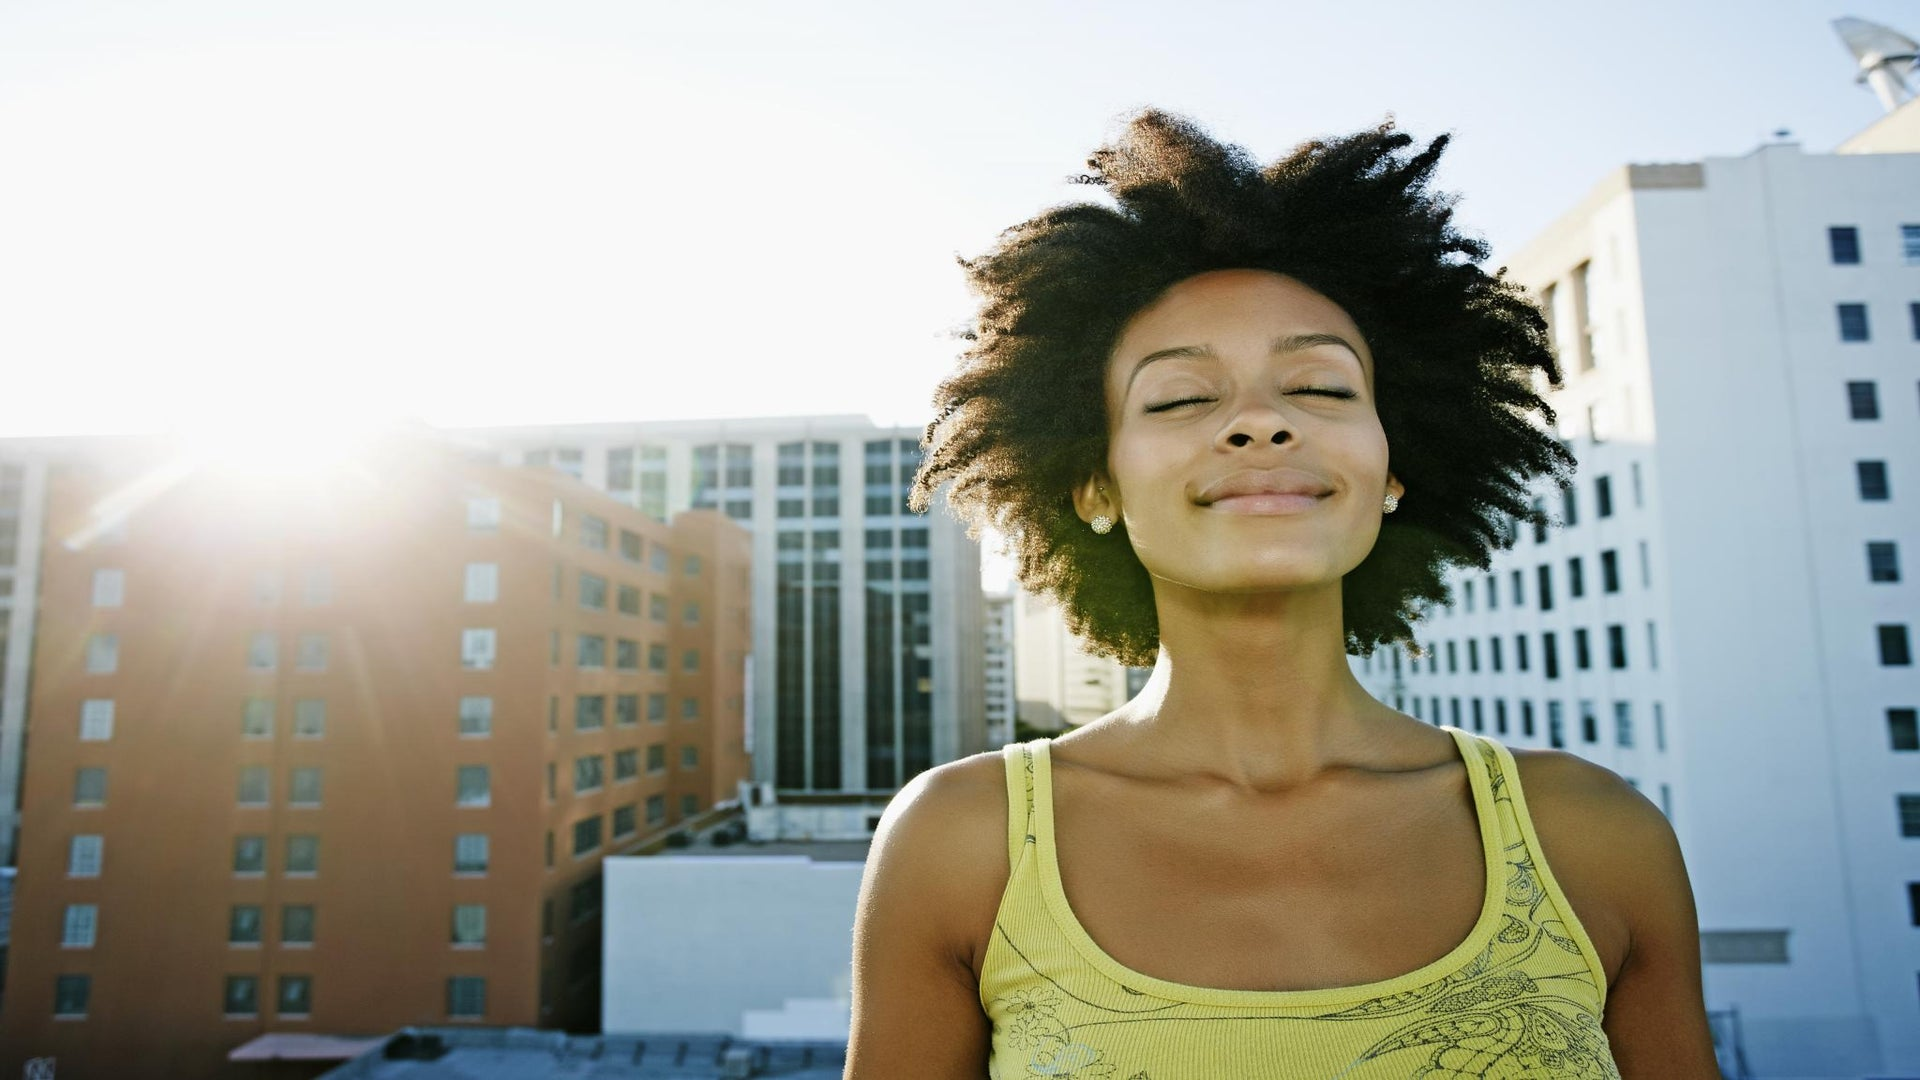 ESSENCE Poll: What Has the Greatest Influence On Your Life?